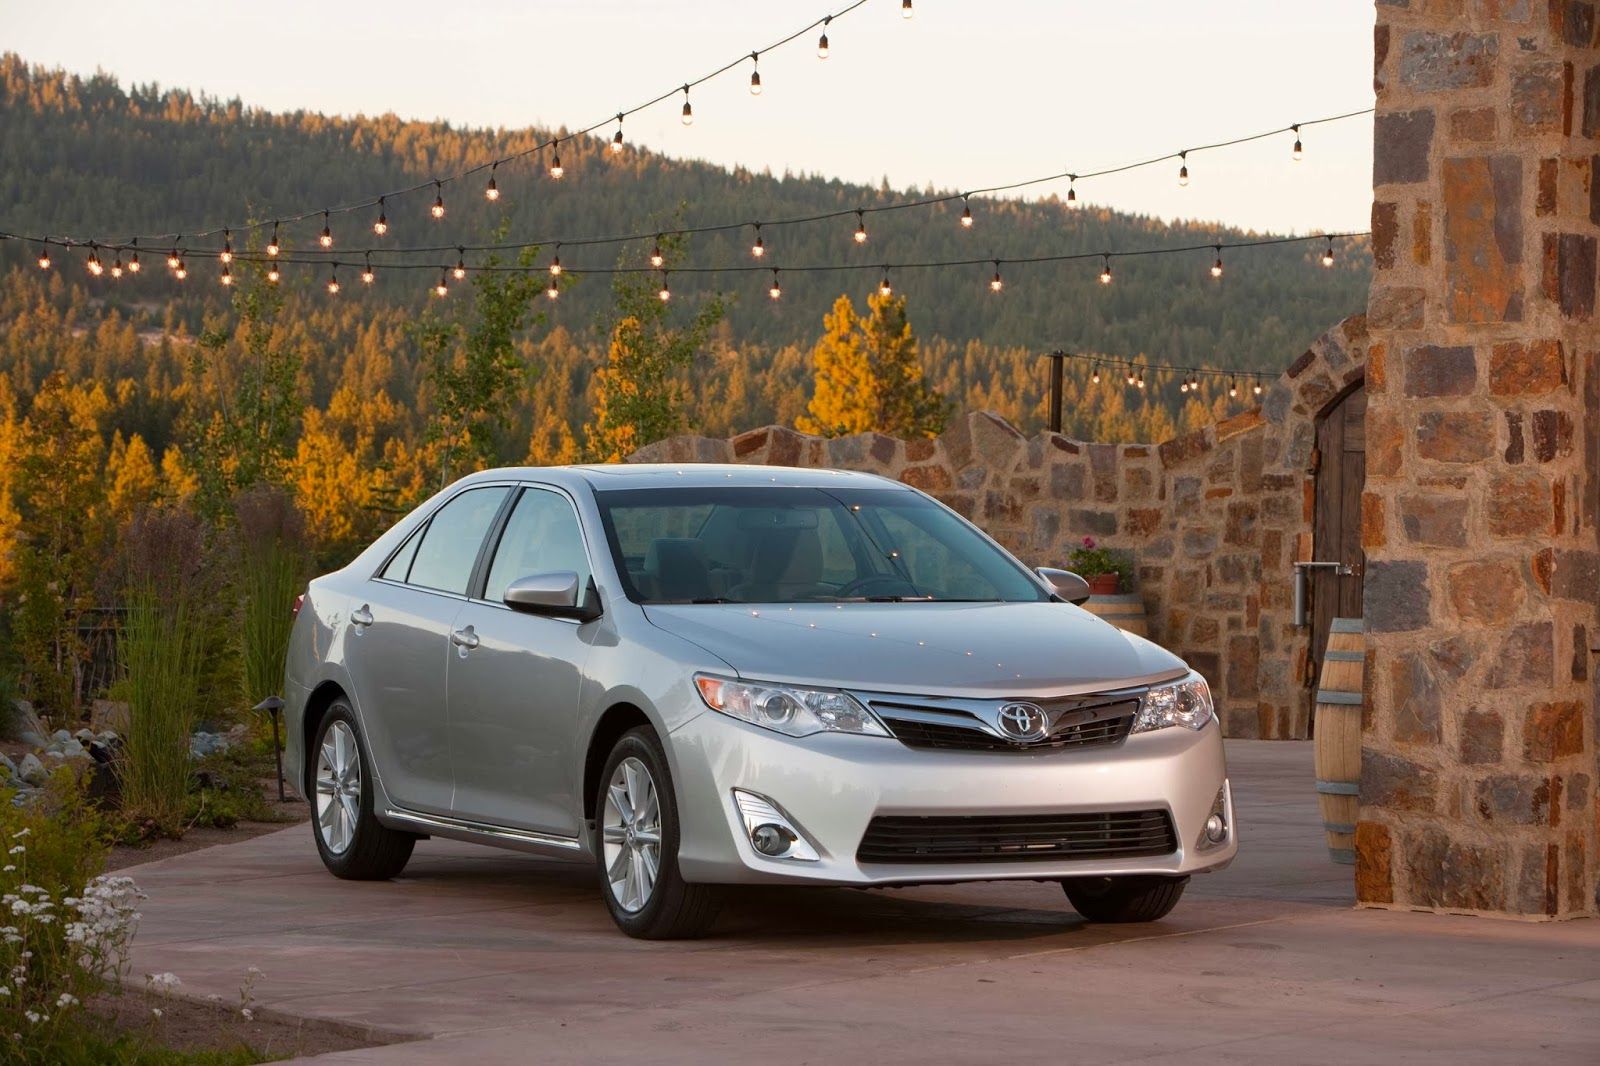 The 2013 toyota camry xle v6 can run with nissan altima and honda accord but can it dance